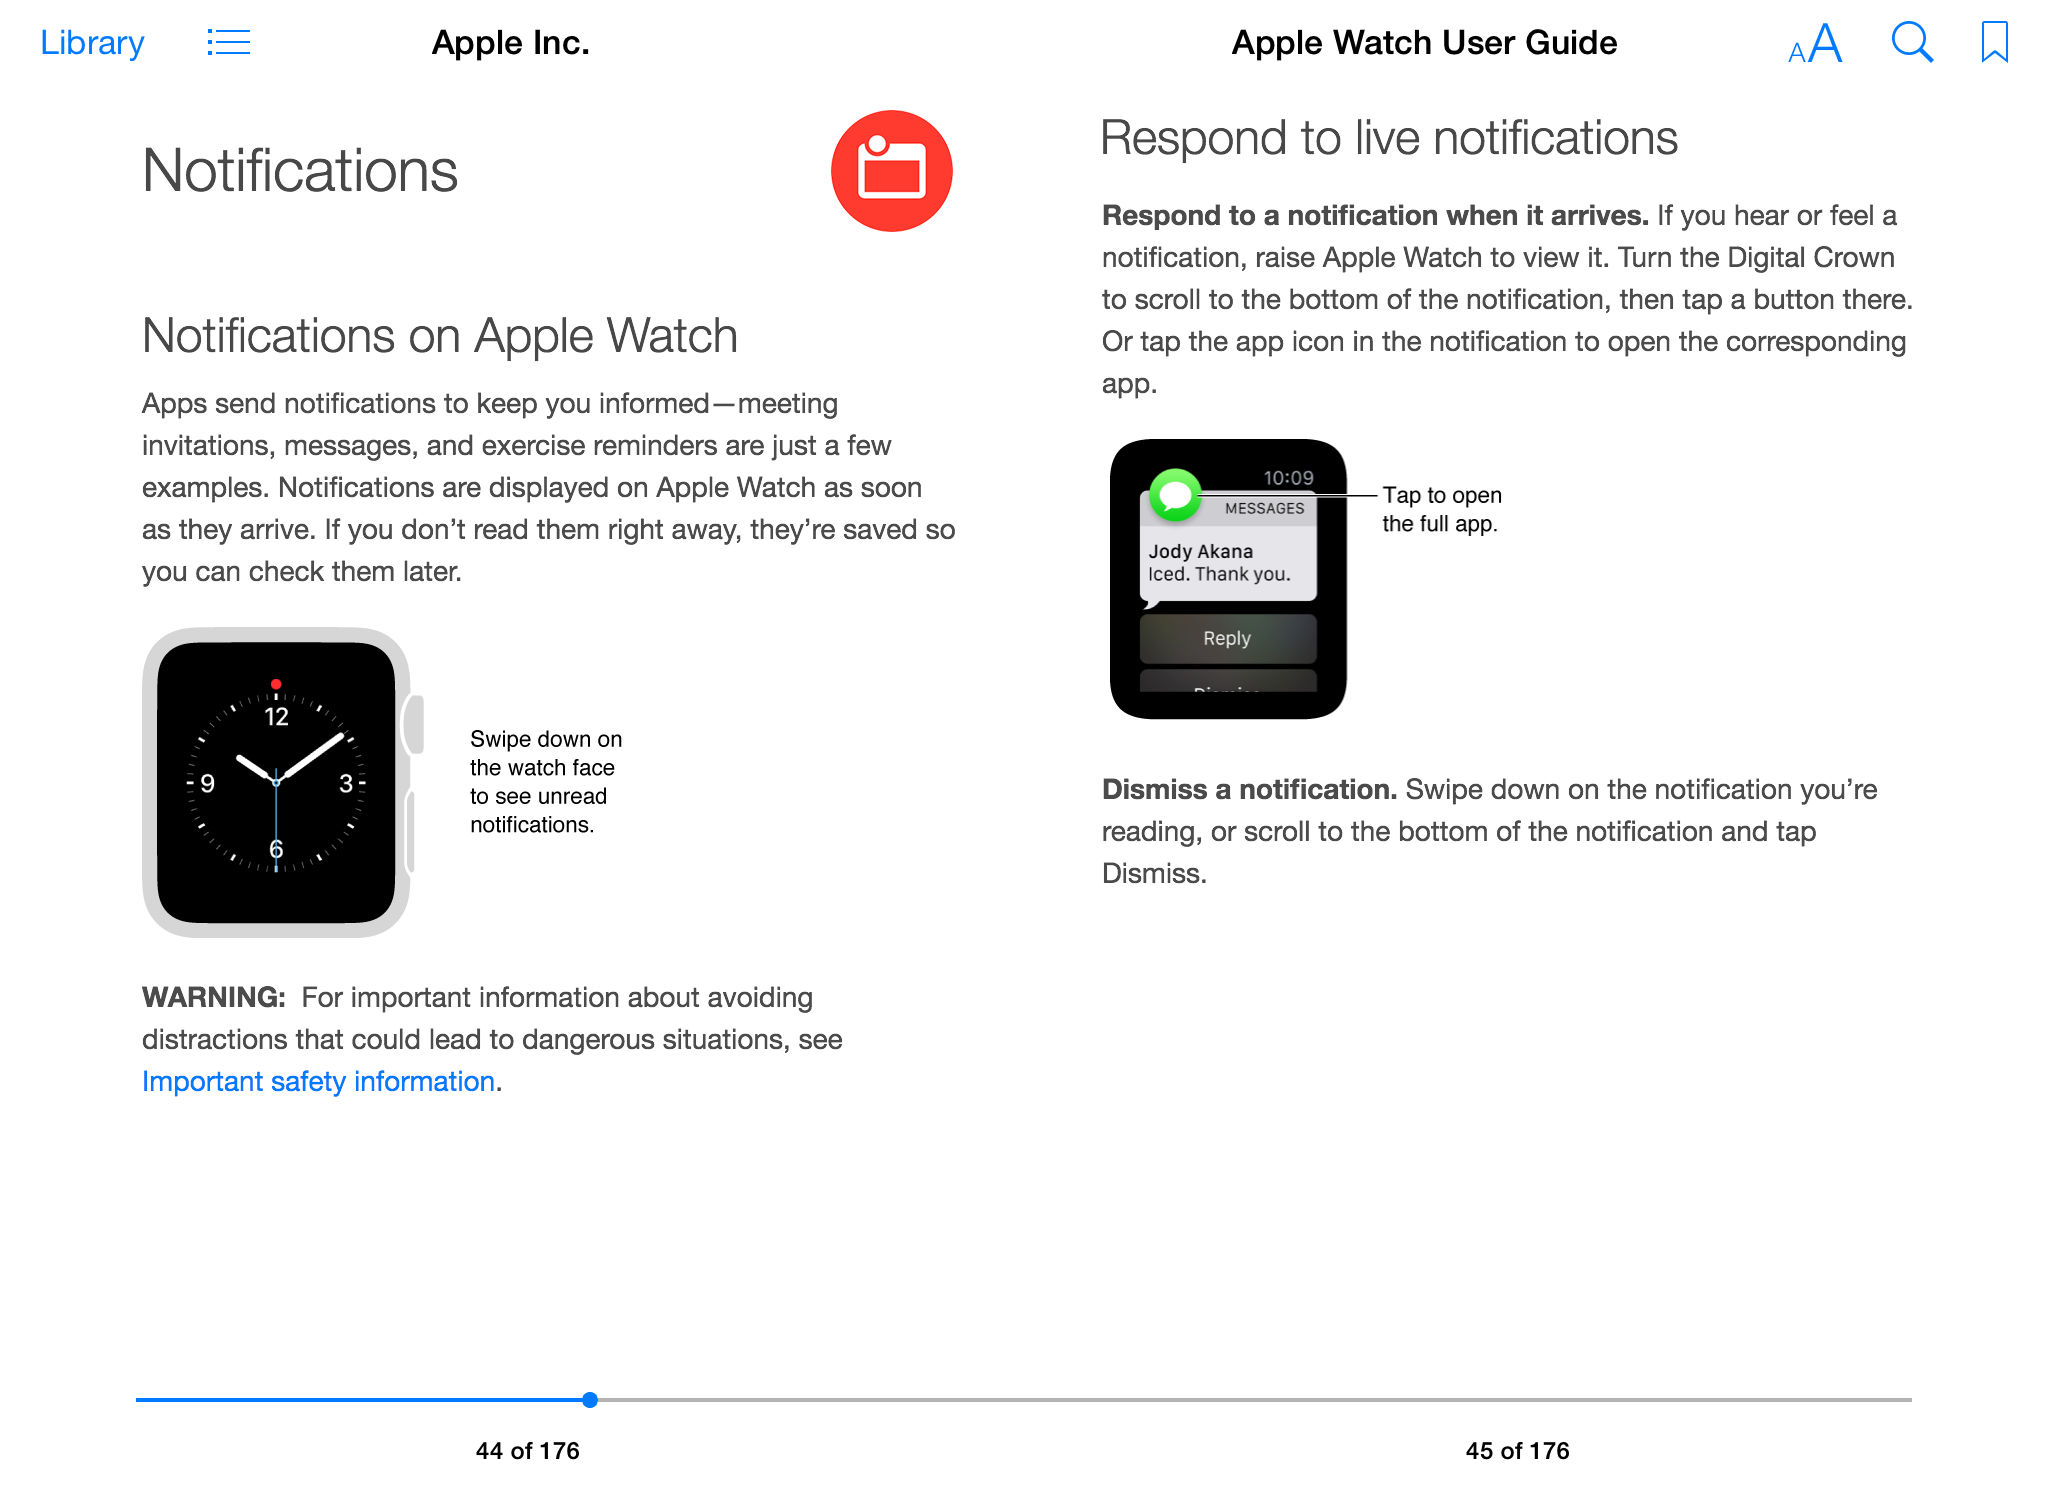 Apple Watch User Guide iBook screenshot 003